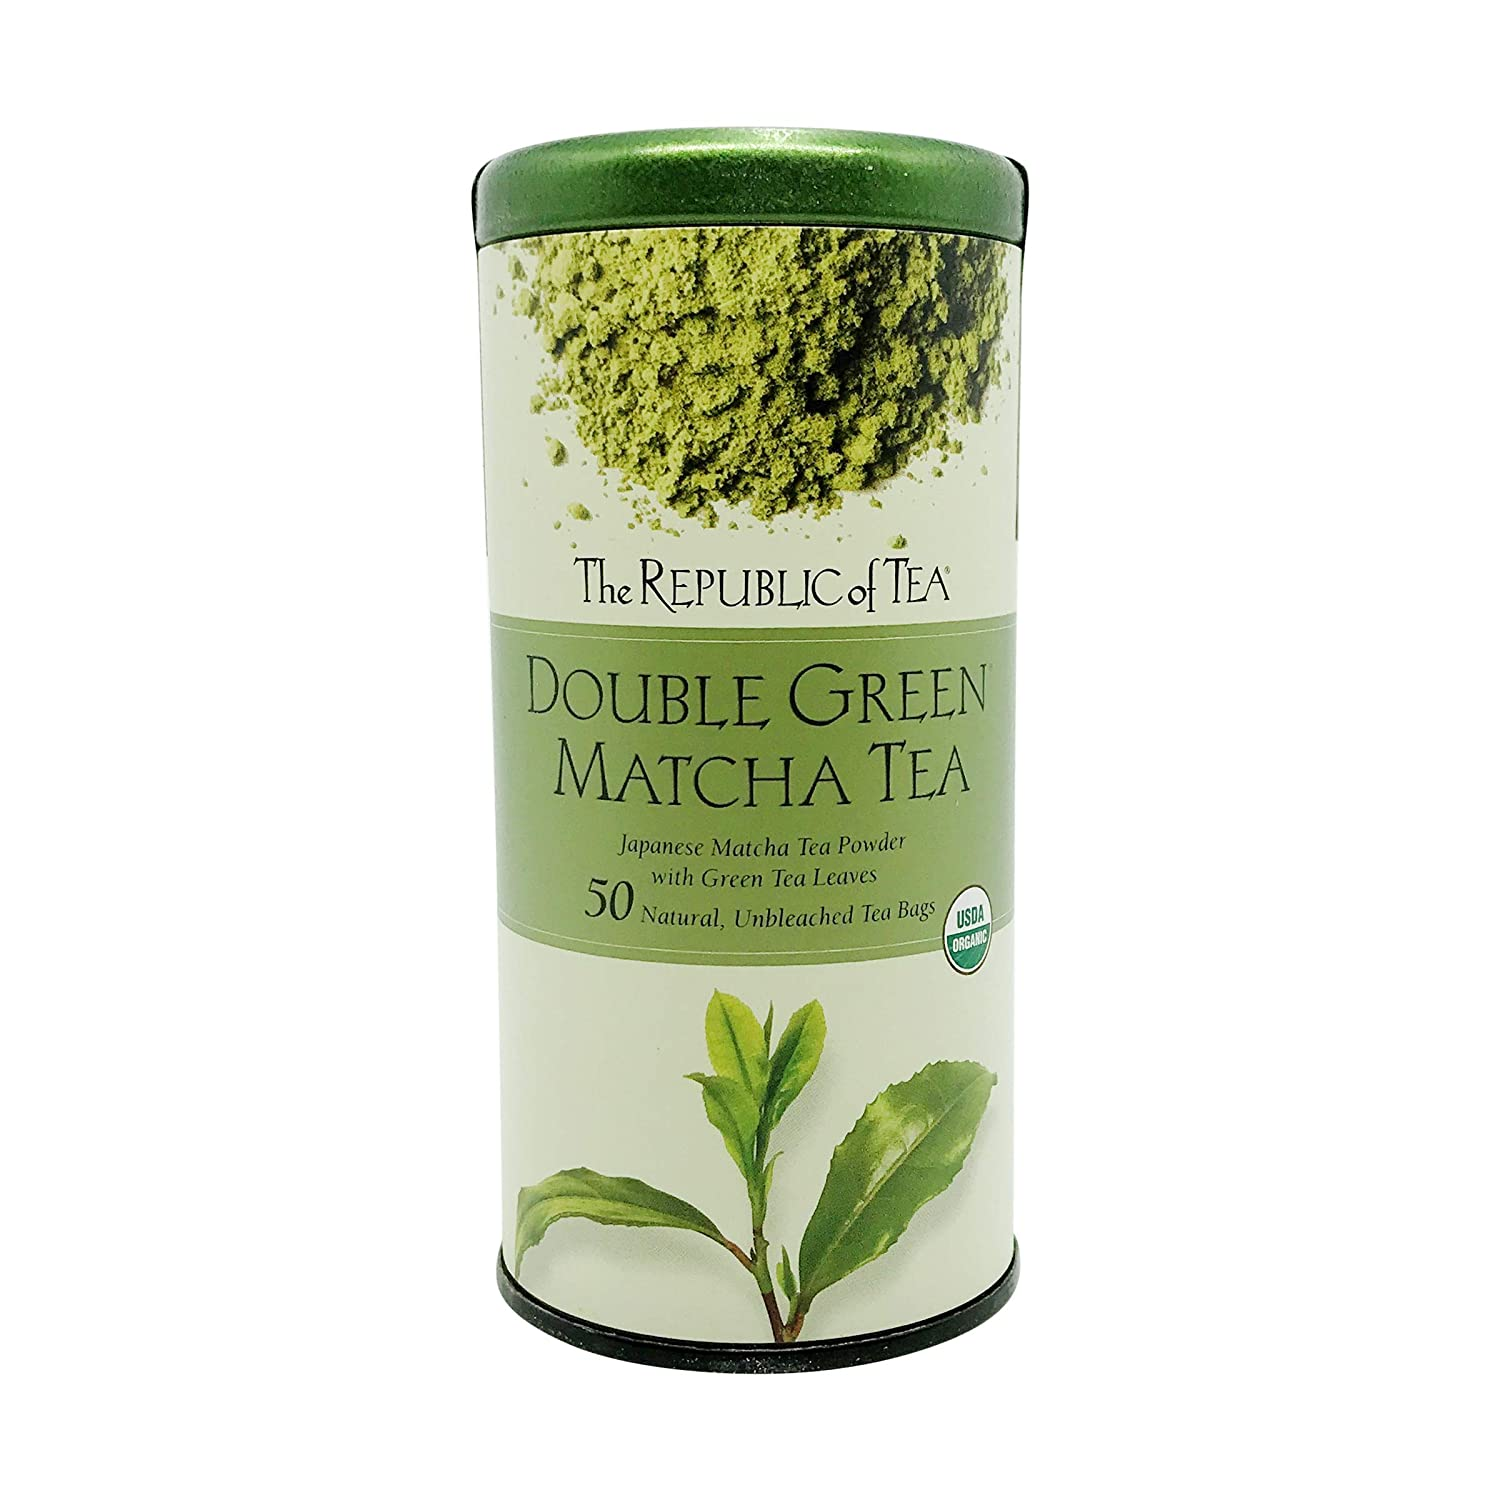 free The Republic of Tea Double Green Organi Gourmet Blend Matcha SEAL limited product